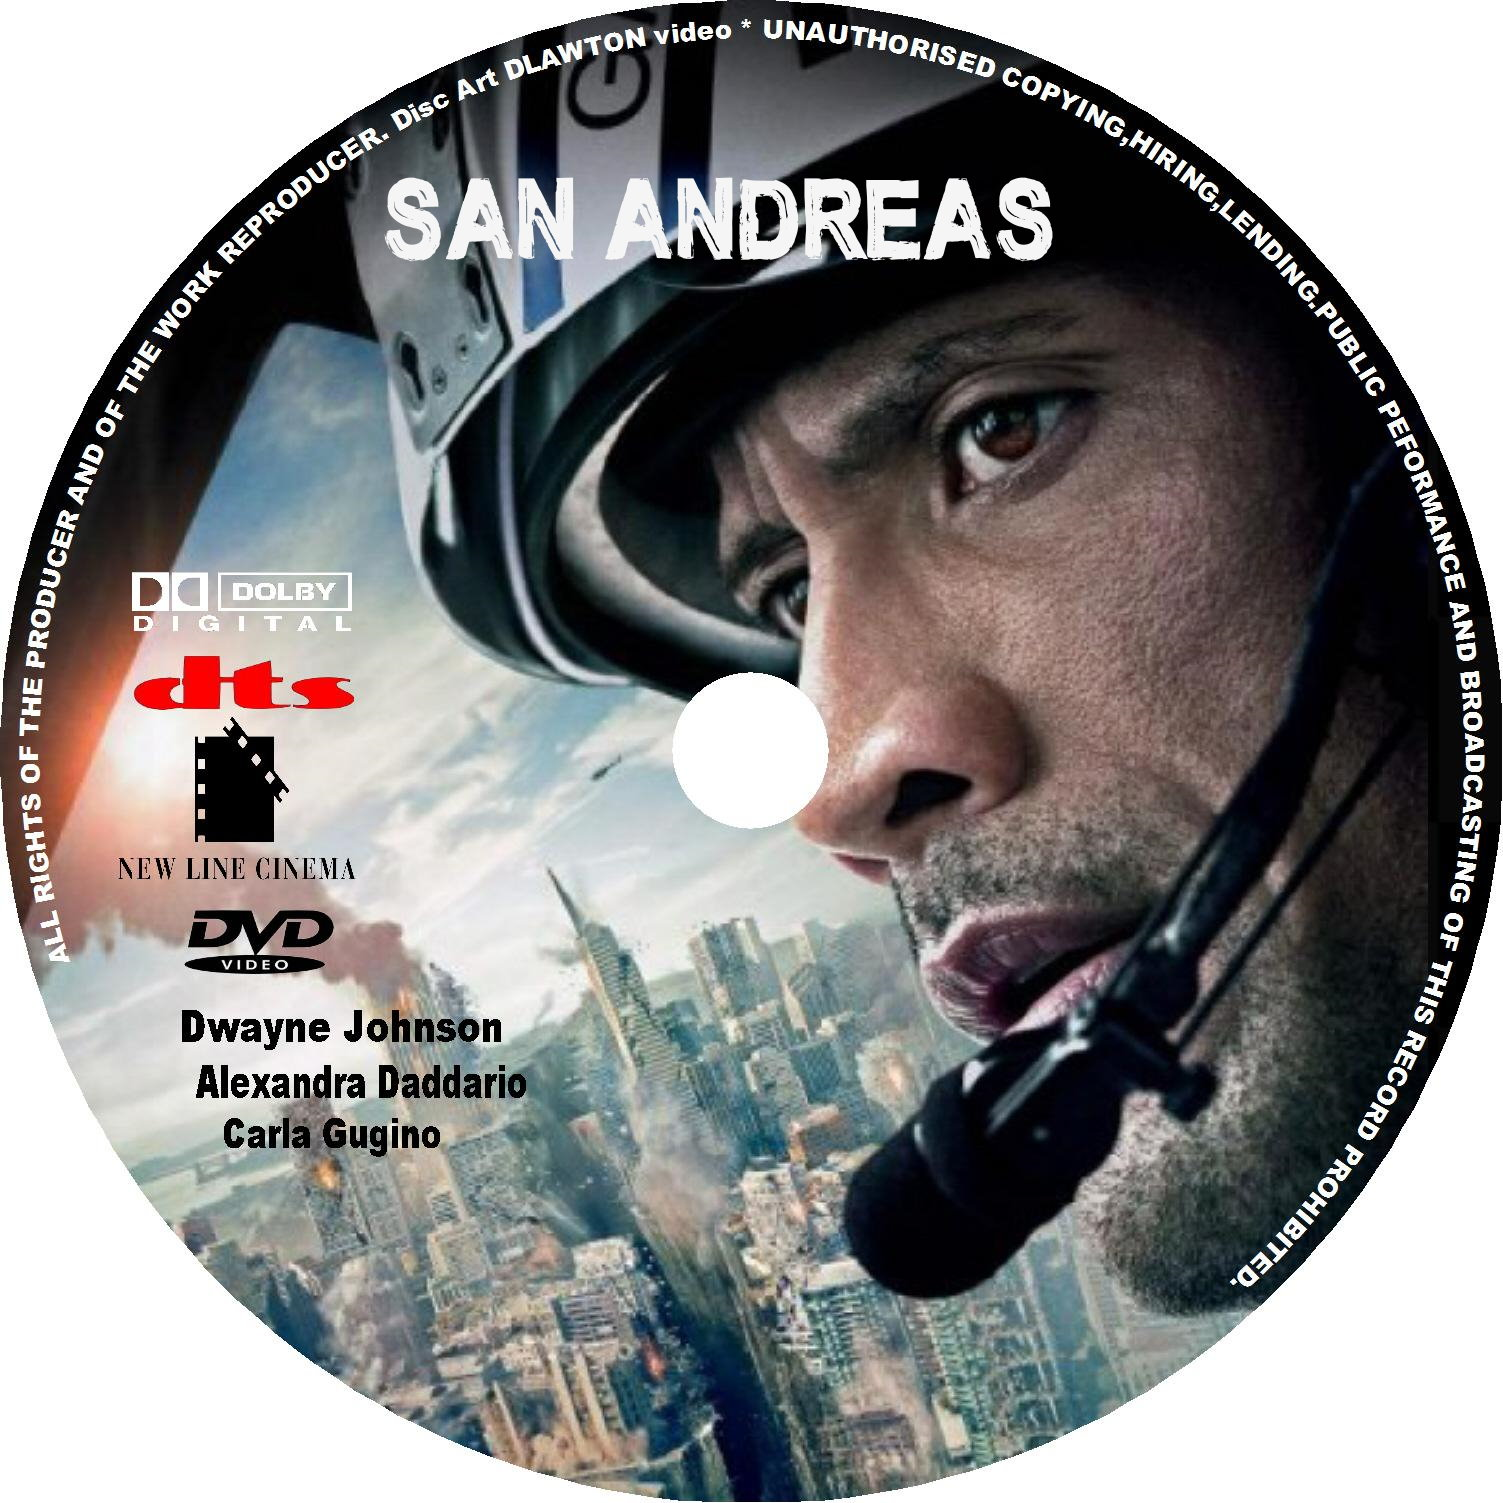 San Andreas 2015 R1 Custom Cd Dvd Covers Cover Century Over 500 000 Album Art Covers For Free